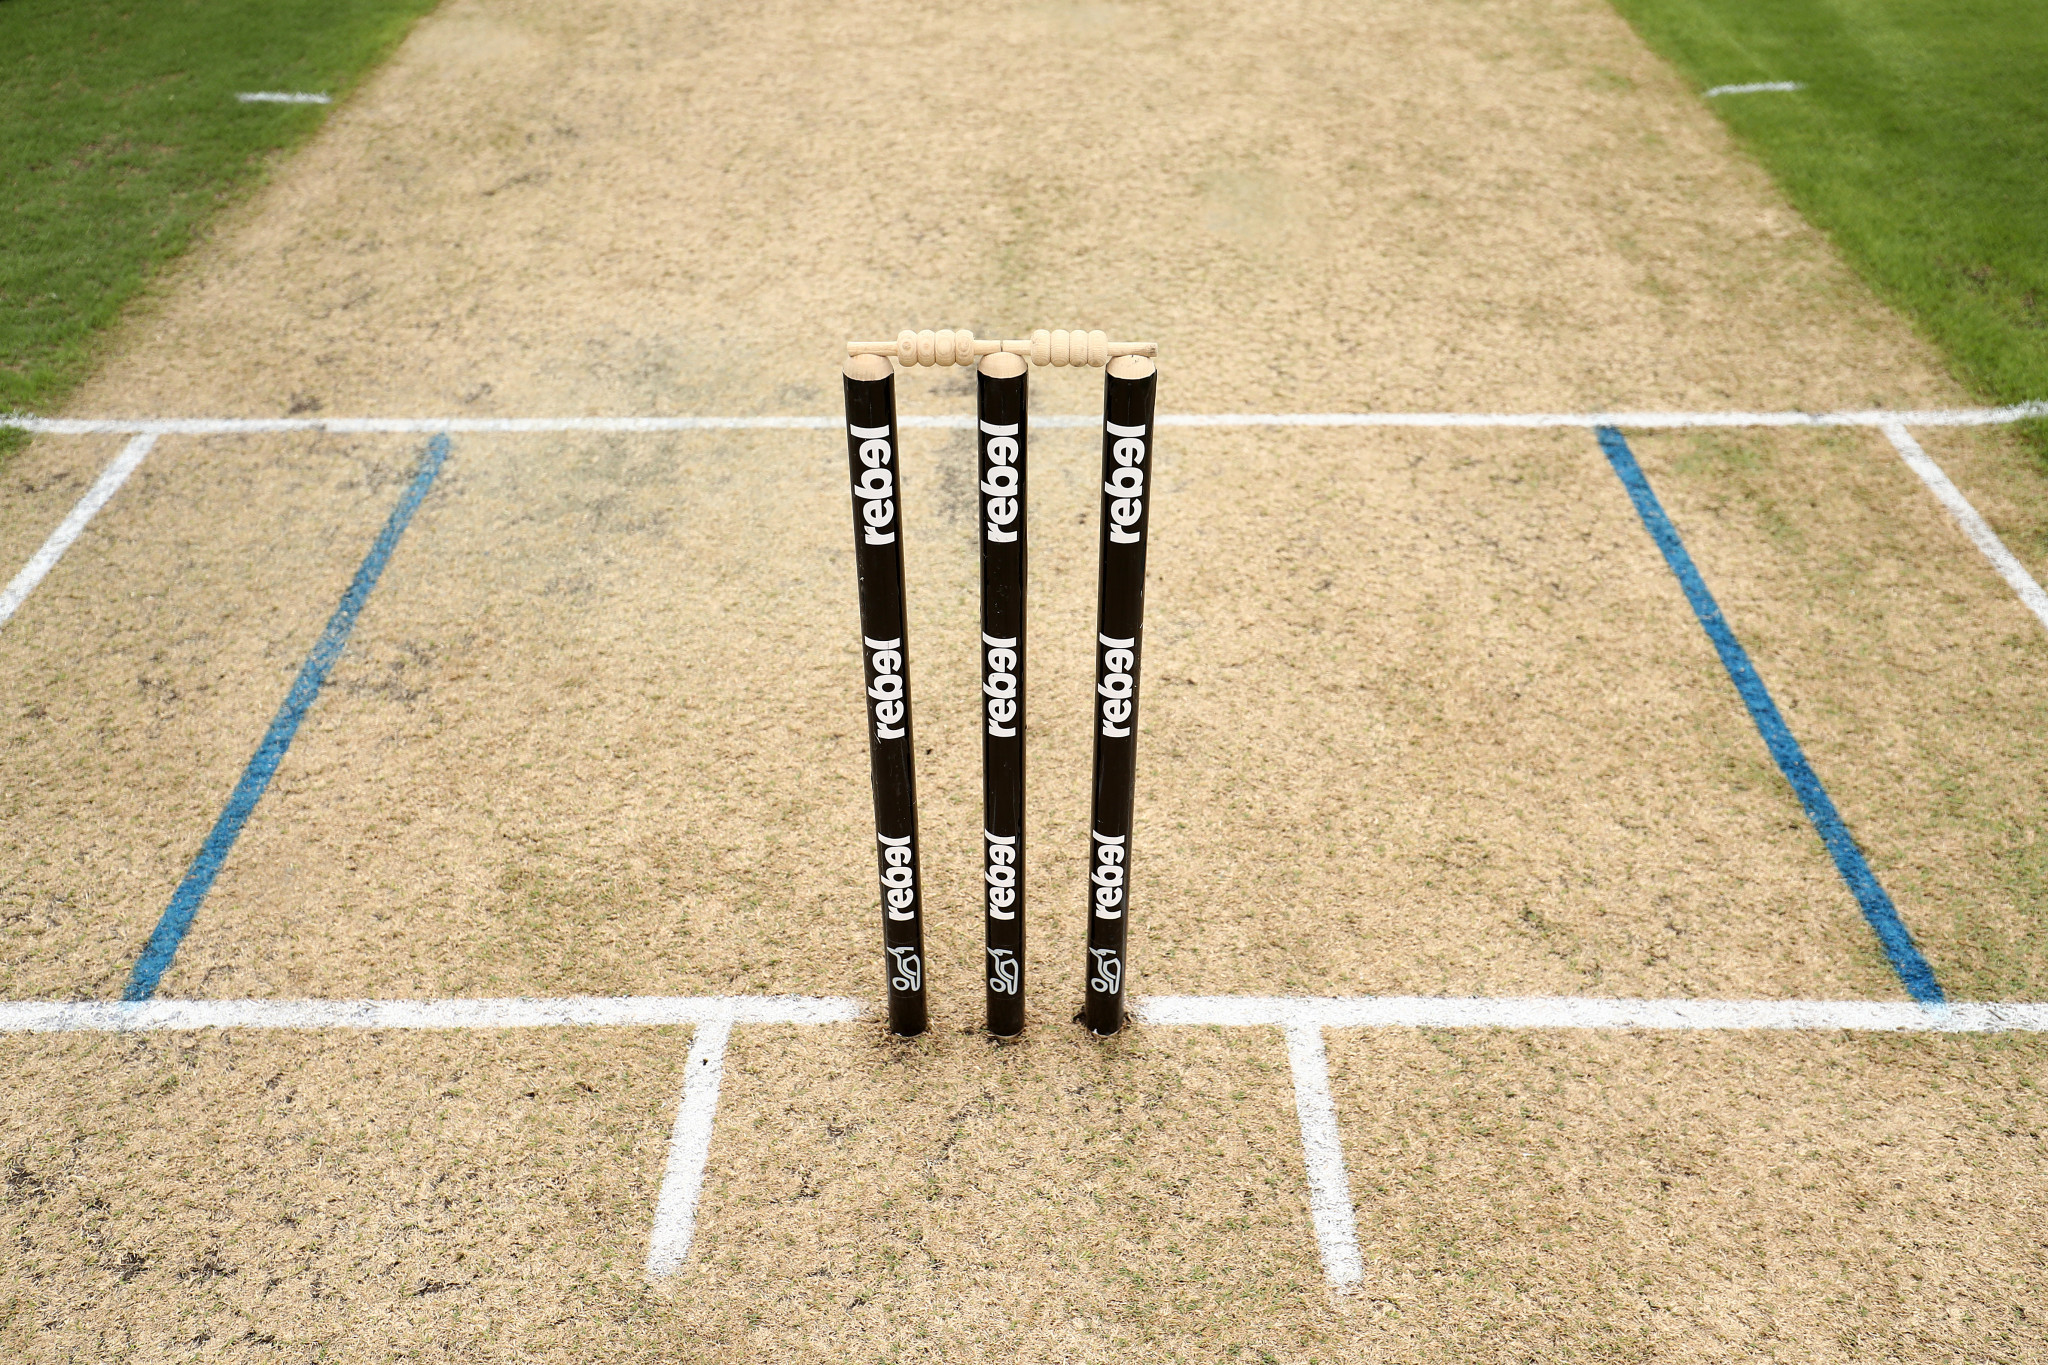 American Major League Cricket tournament launch pushed back to 2023